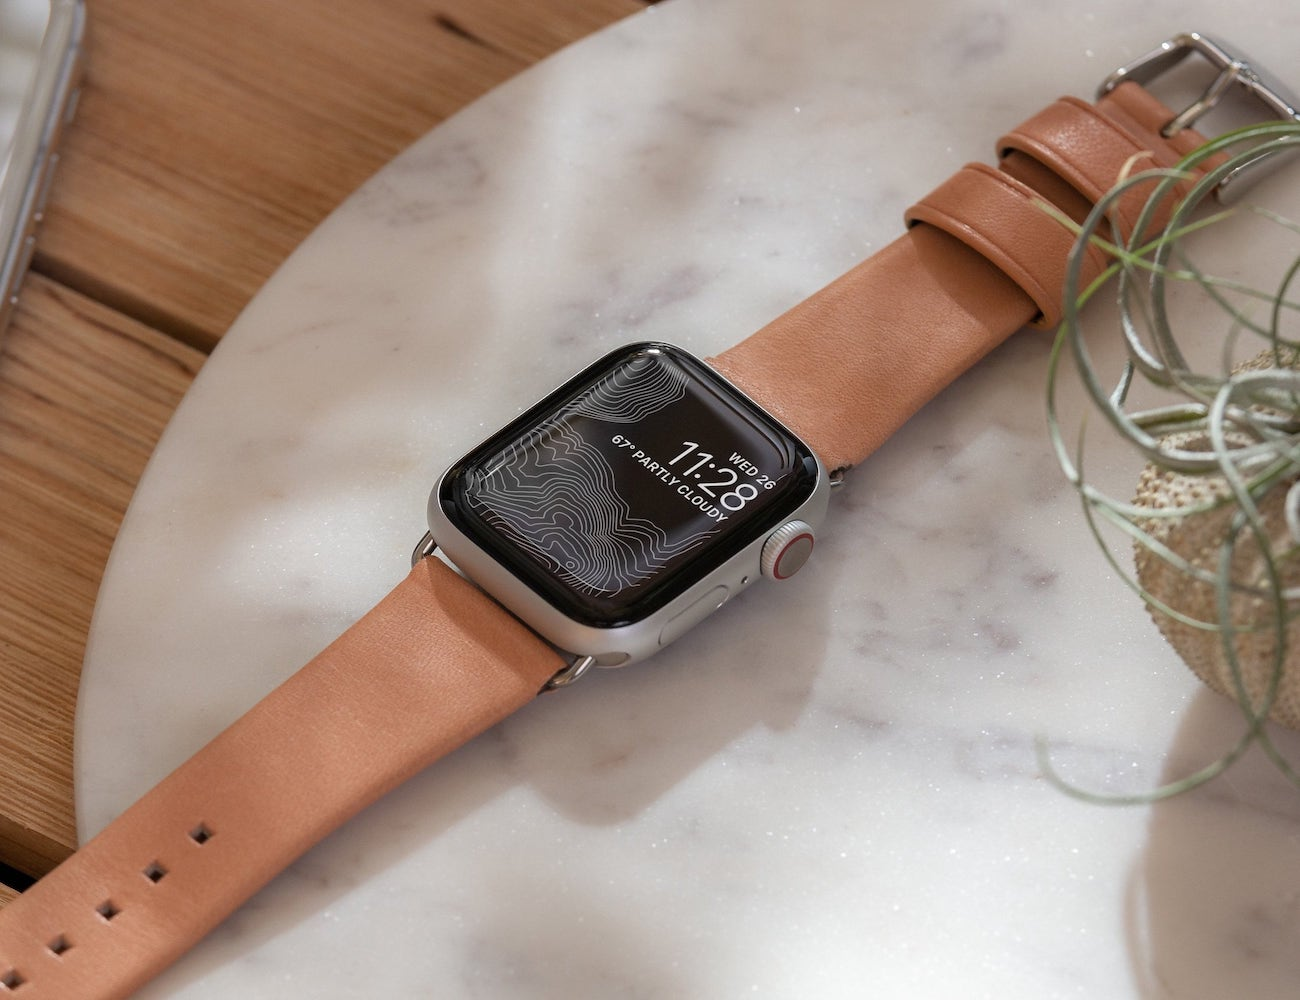 Nomad Modern Leather Strap for Apple Watch is sophisticated and classy